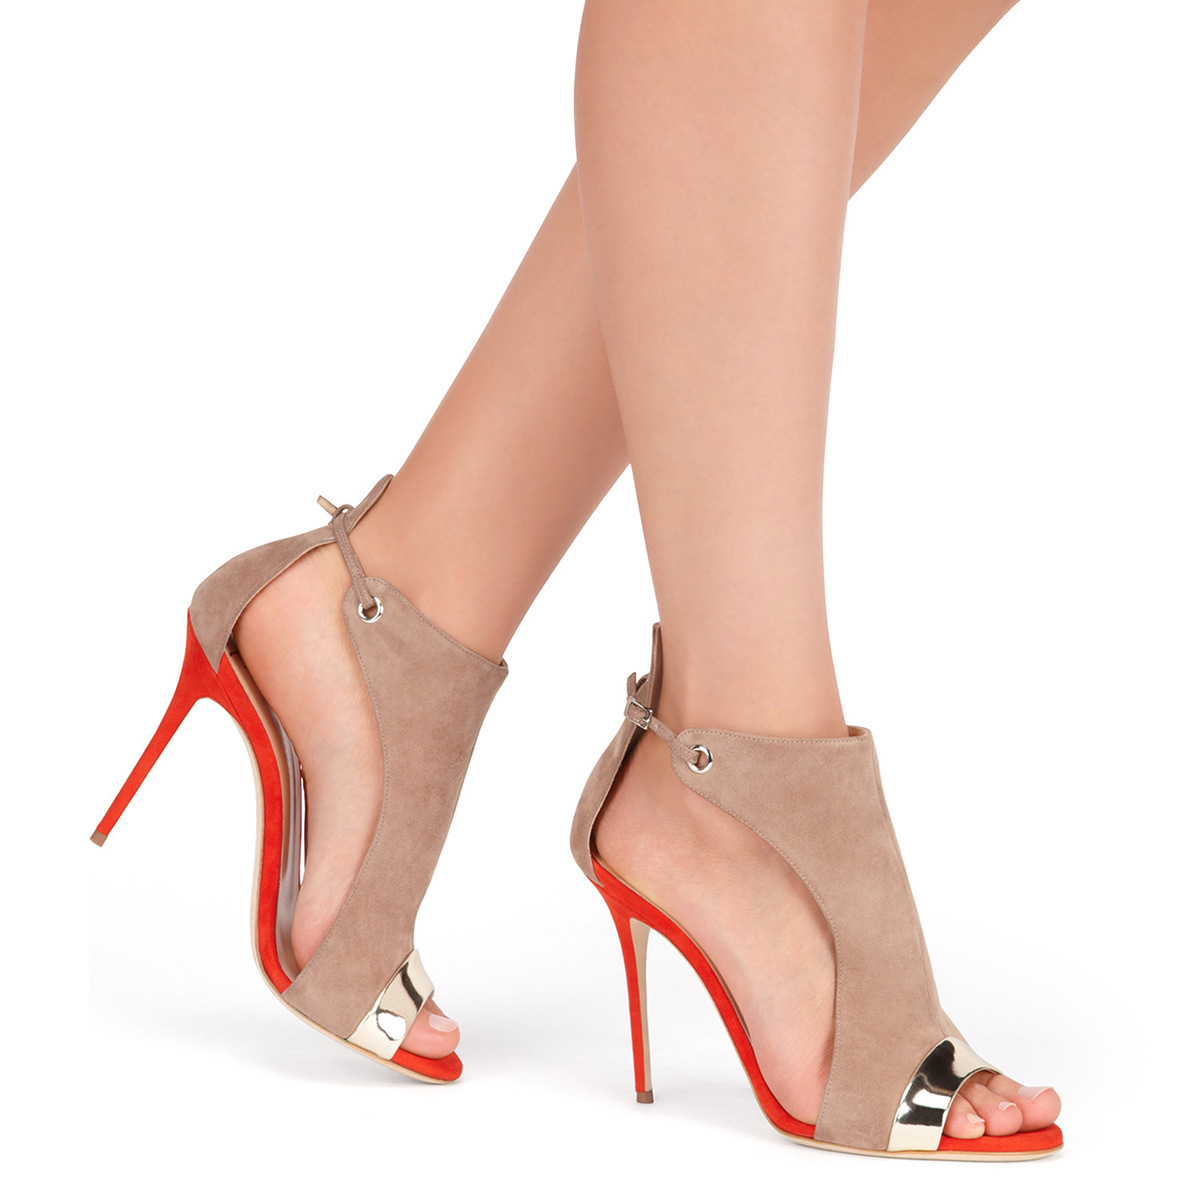 Brand Fashion Women Pumps Ankle Strap High Heel Pumps Shoes for Women Sexy Peep Toe High Heels Sandals Party Wedding Shoes Woman adjustable laptop desk computer table office furniture desk laptop stand desk modern notebook table laptop bed tray page 3